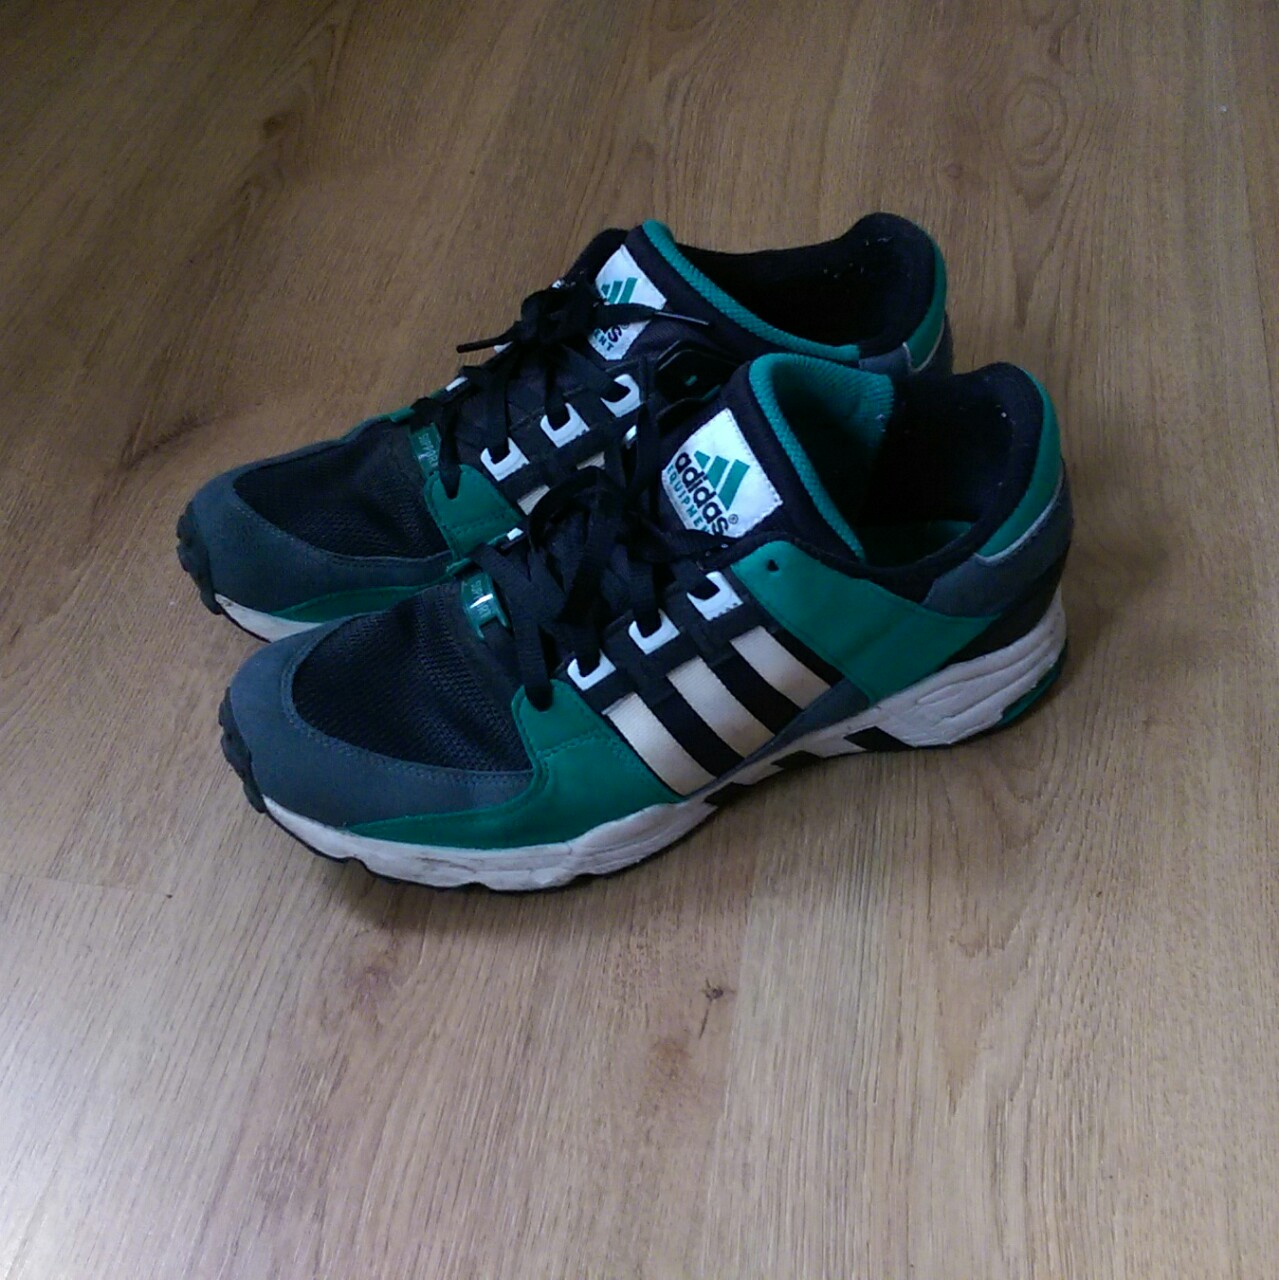 on sale 9f7d9 b0eab Adidas 1993 EQT Support Trainers #90s #adidas... - Depop